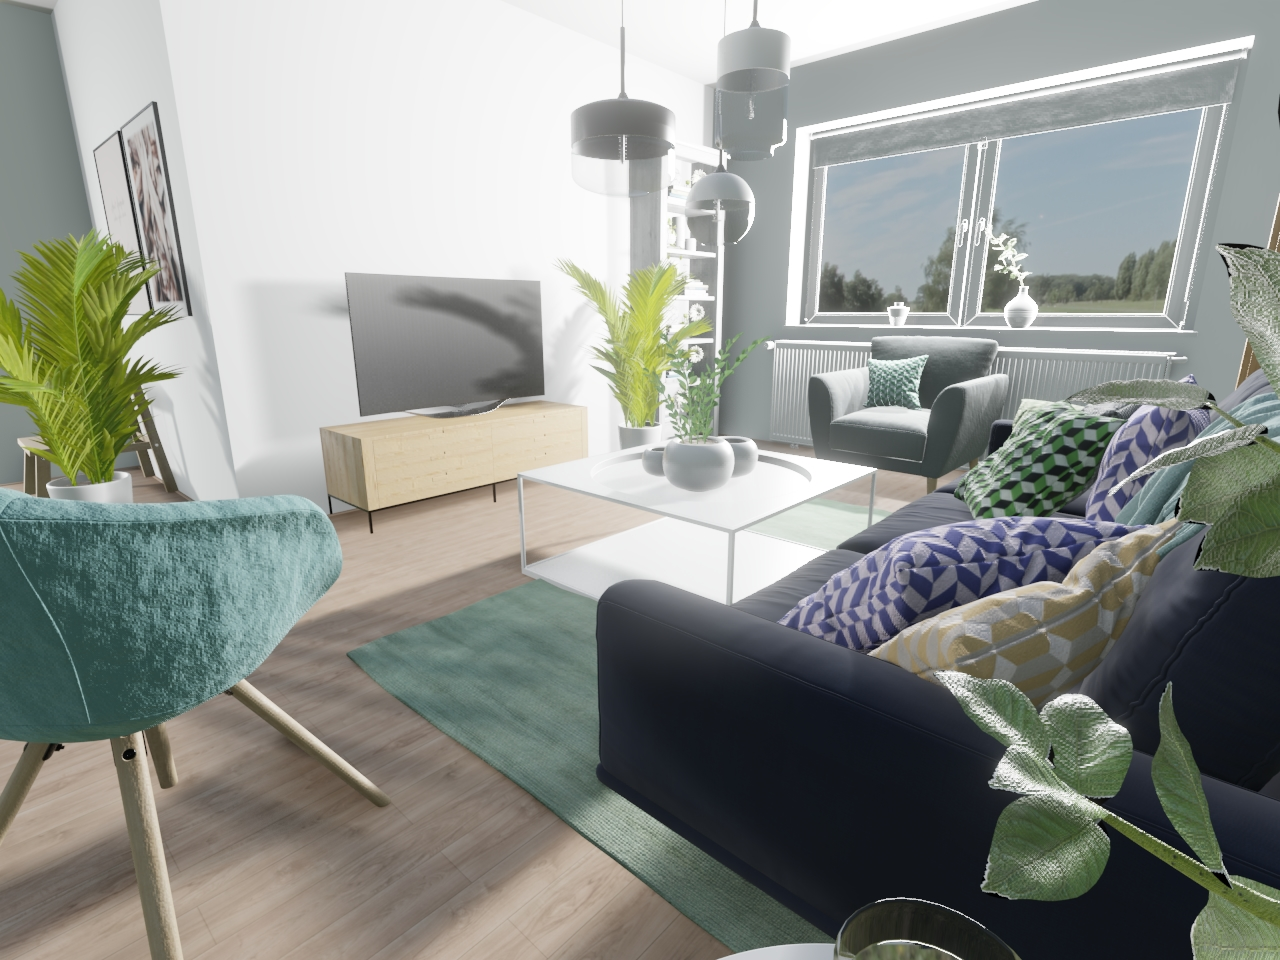 ineiko_fully_automated_interior_design_algorithem2